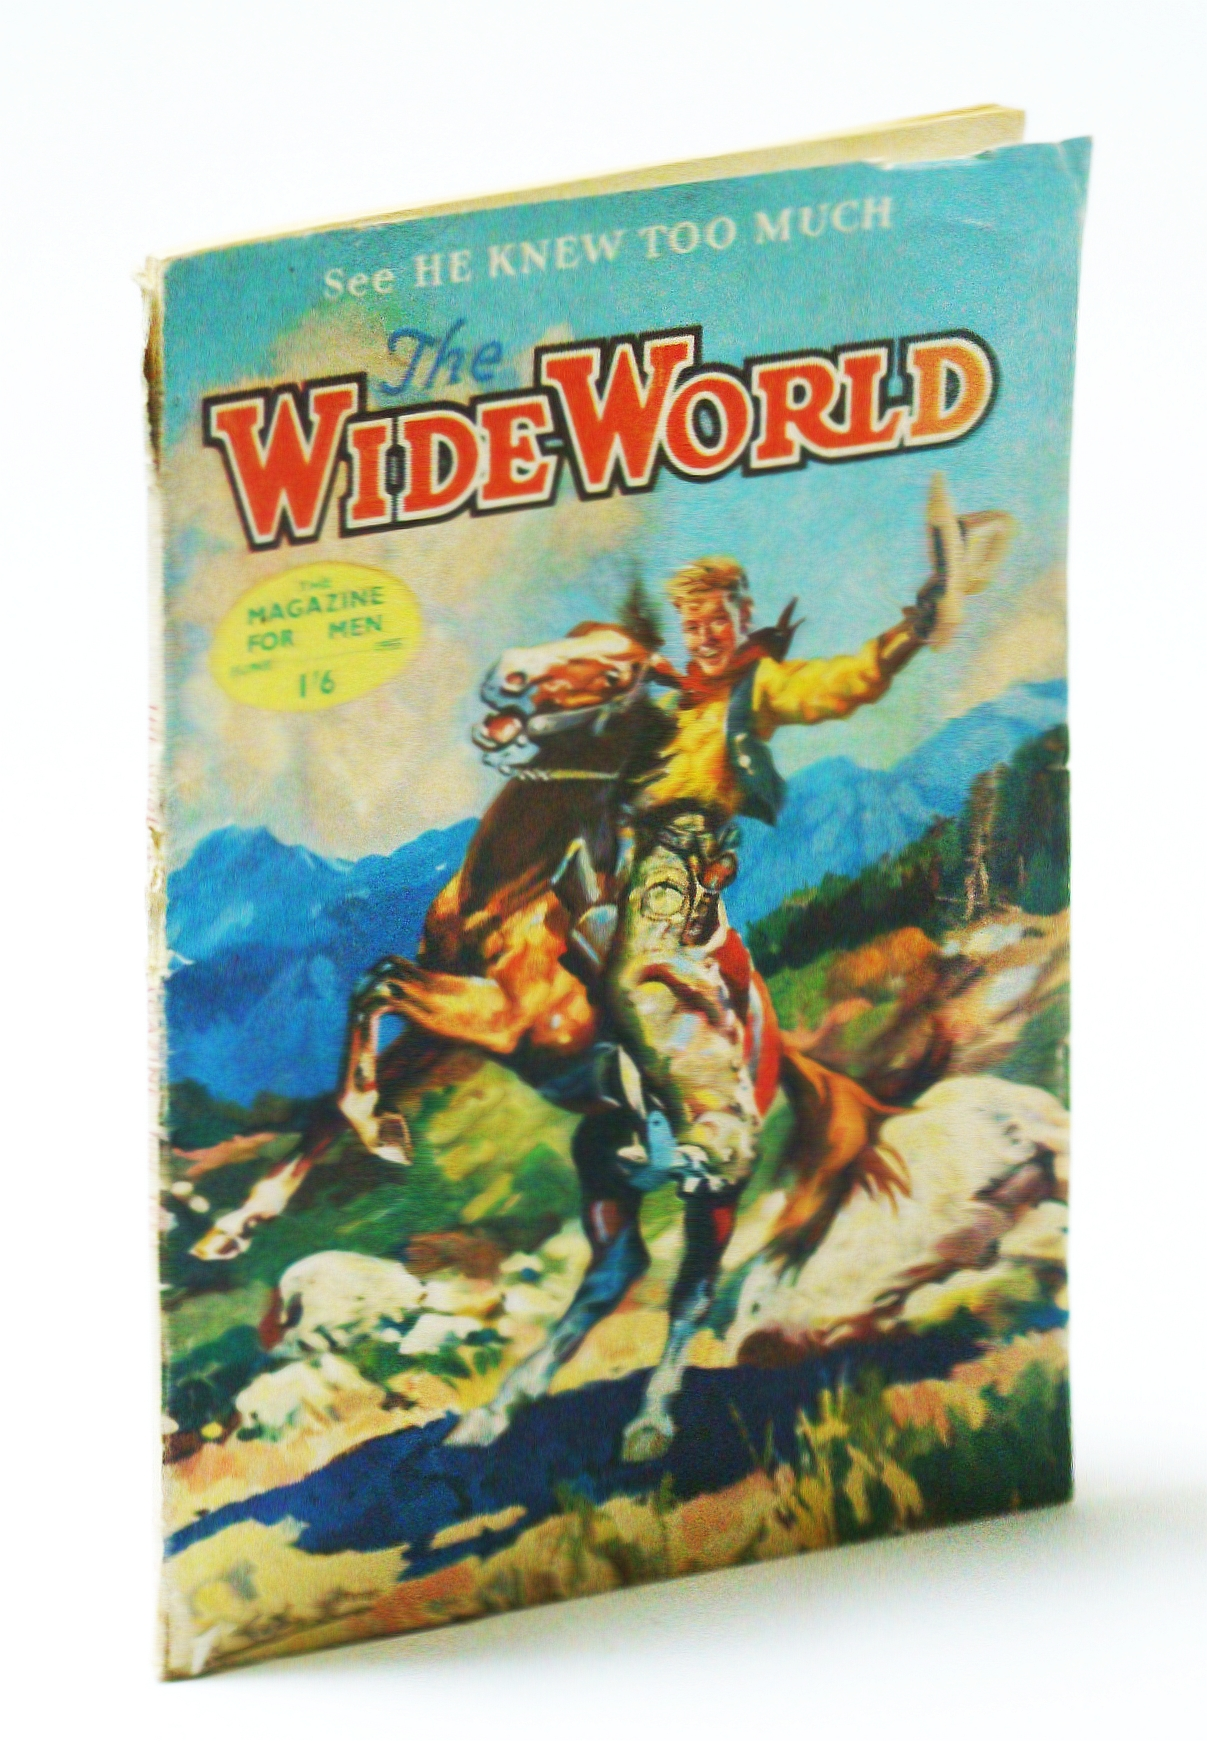 Image for The Wide World Magazine - June 1955 - Vol.155, No.684